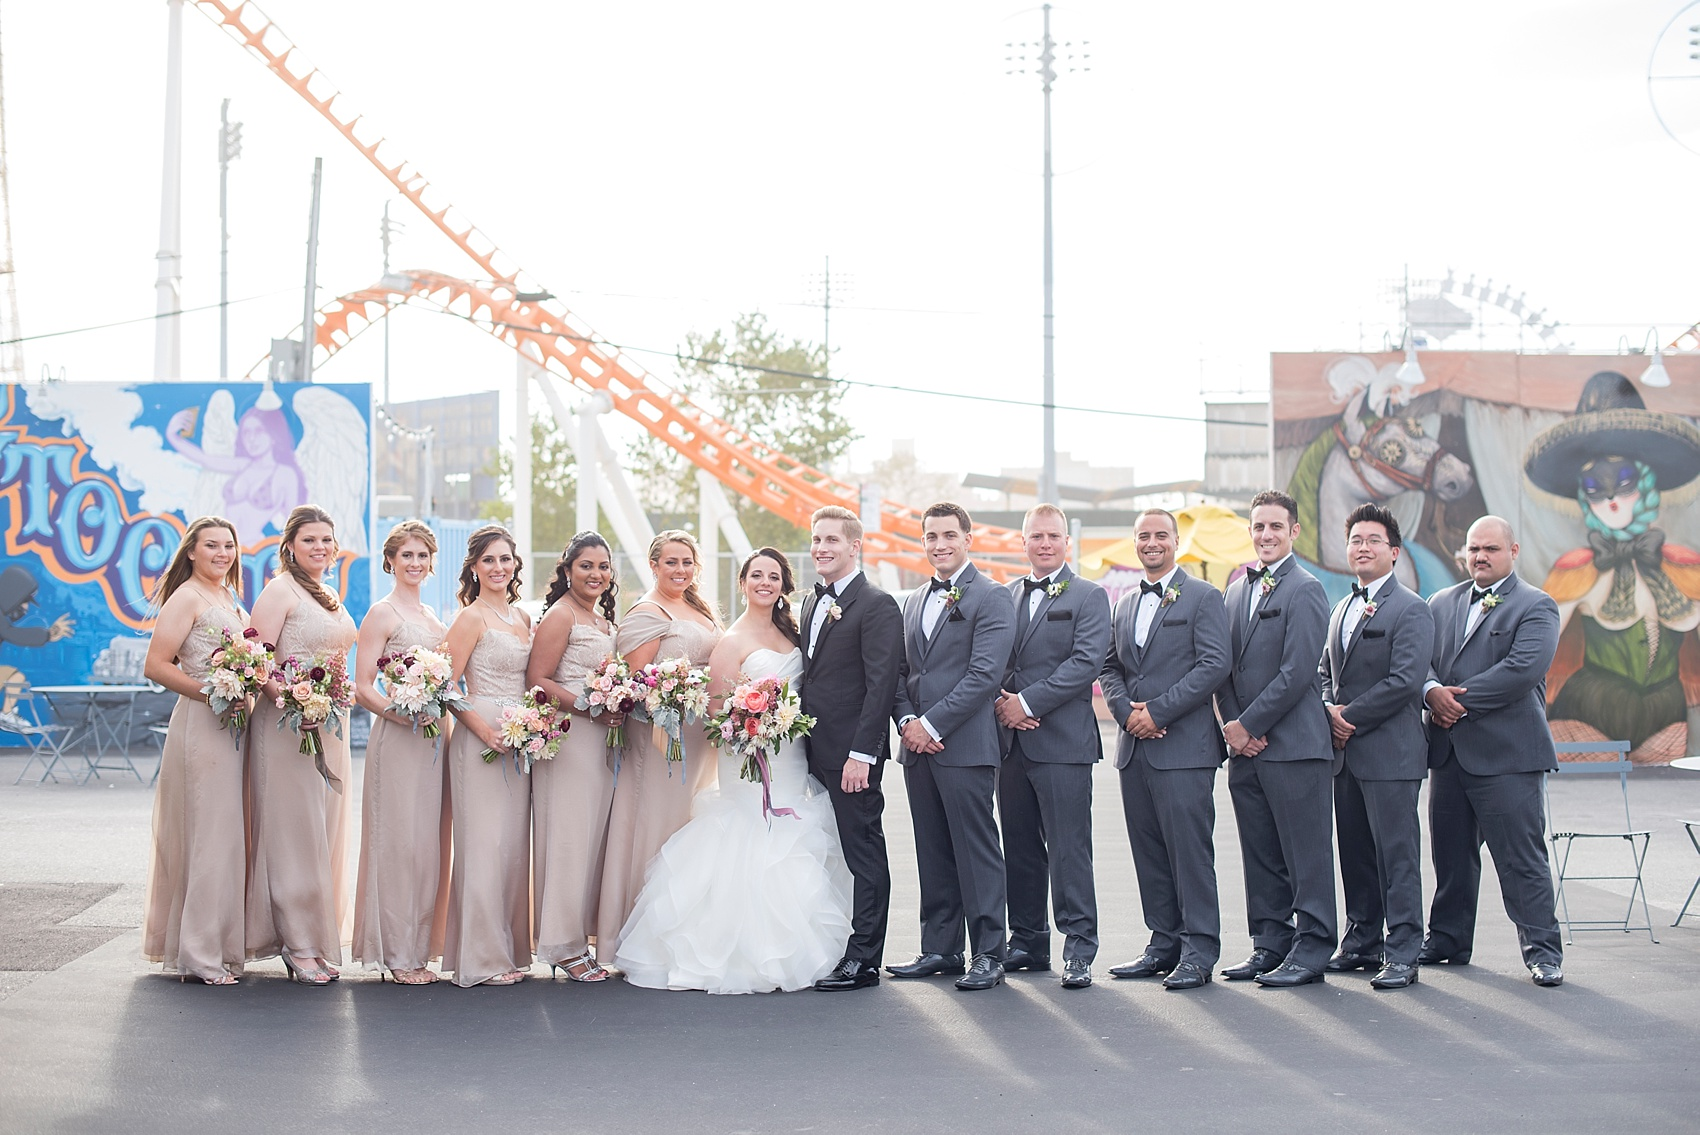 Coney Island Wedding Photos By Mikkel Paige Photography Sachi Rose Fl Design Planning